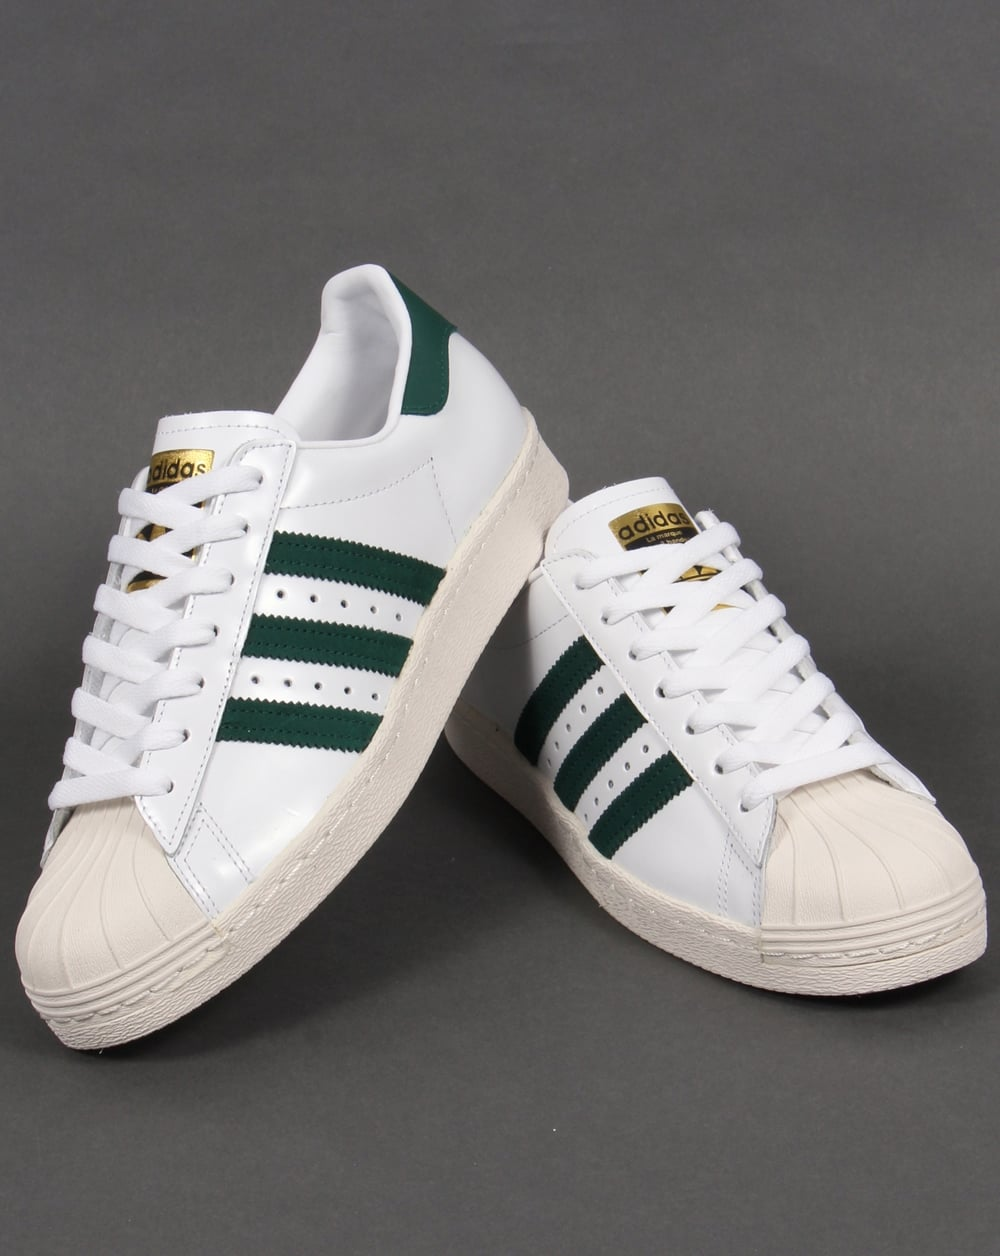 65d1e982461049 Adidas Superstar 80s Trainers White Green